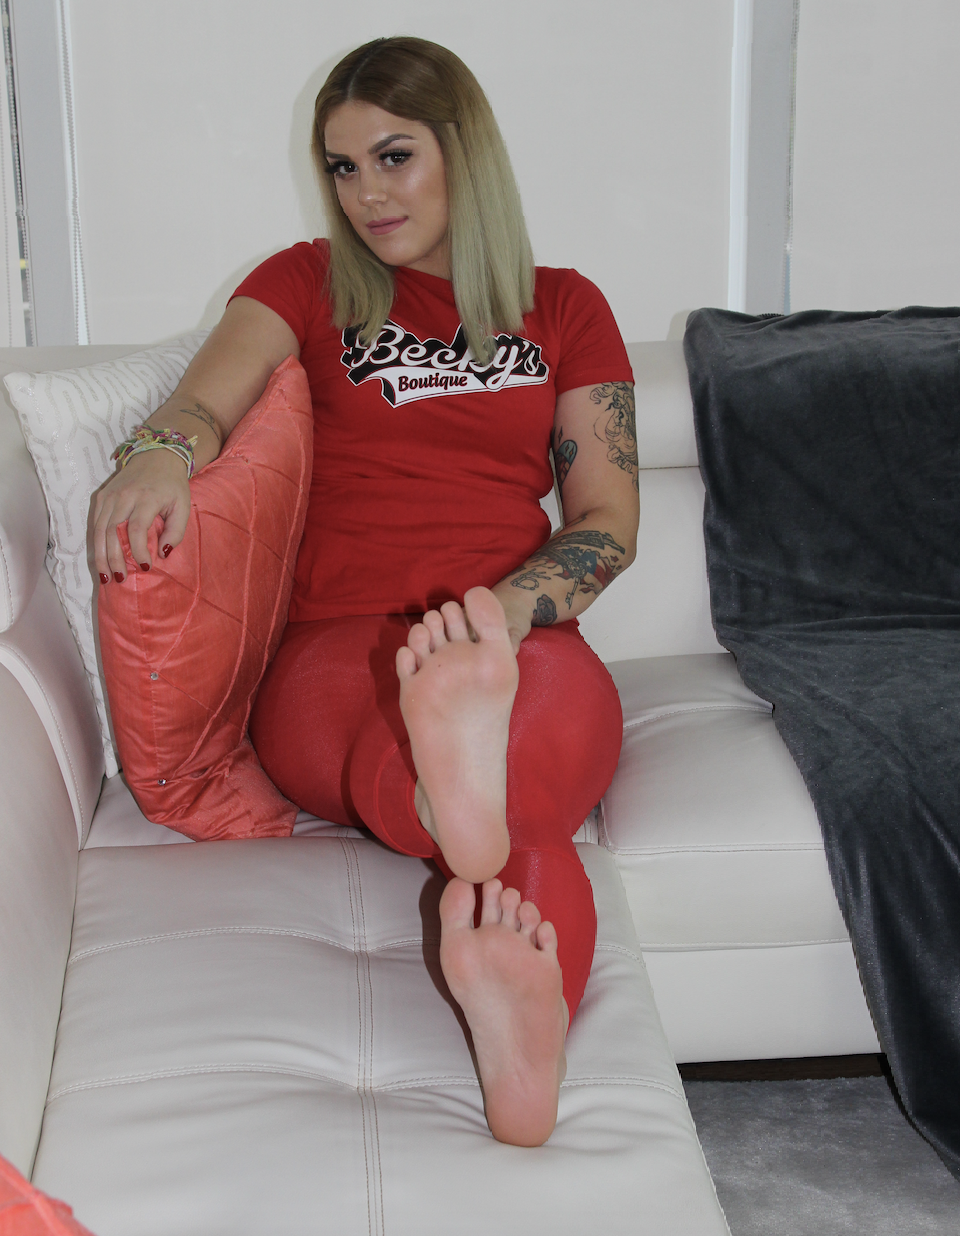 KAILEY KUPCAKE - Ms Kailey Cupcake is a Beautiful, Curvy Blonde with Deliciously juicy size 8 Feet that are incredibly Thick and Meaty. Kailey's feet are tailor made for Gentlemen with an insatiable appetite for Wrinkled Soles. Kailey's also ticklish and absolutely delicious!!